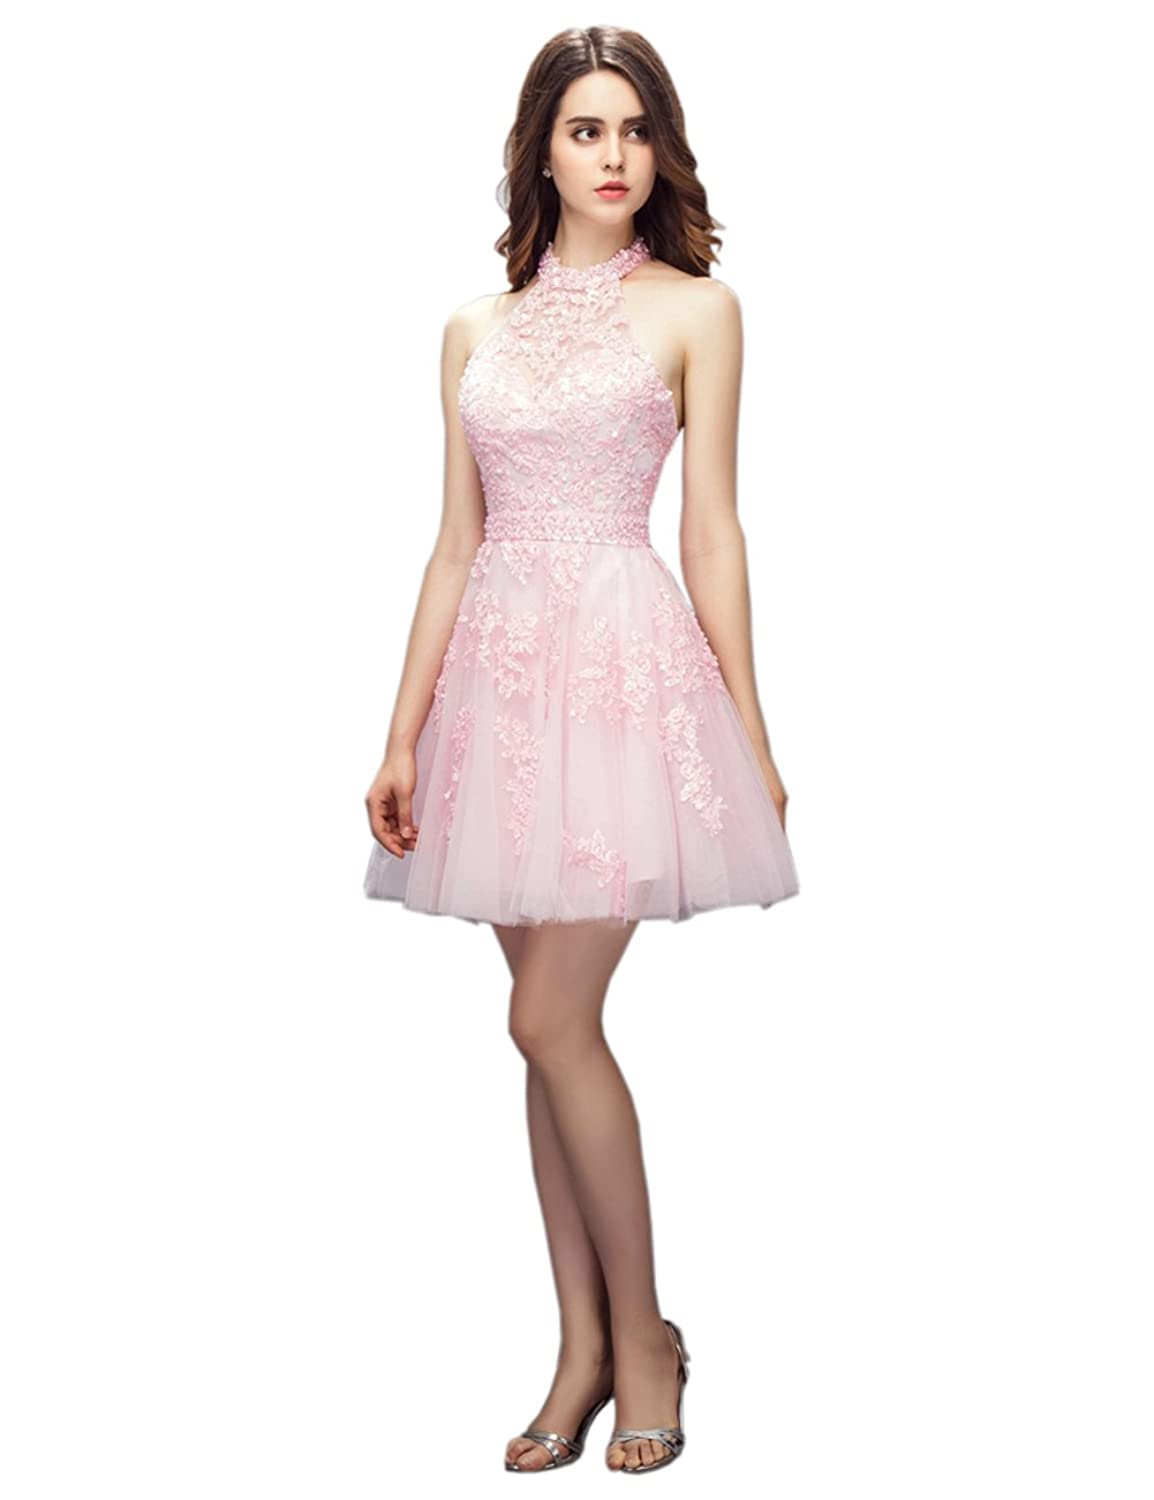 Ikerenwedding Women's Halter Beading Lace Appliques Short Tulle Club Party Dress